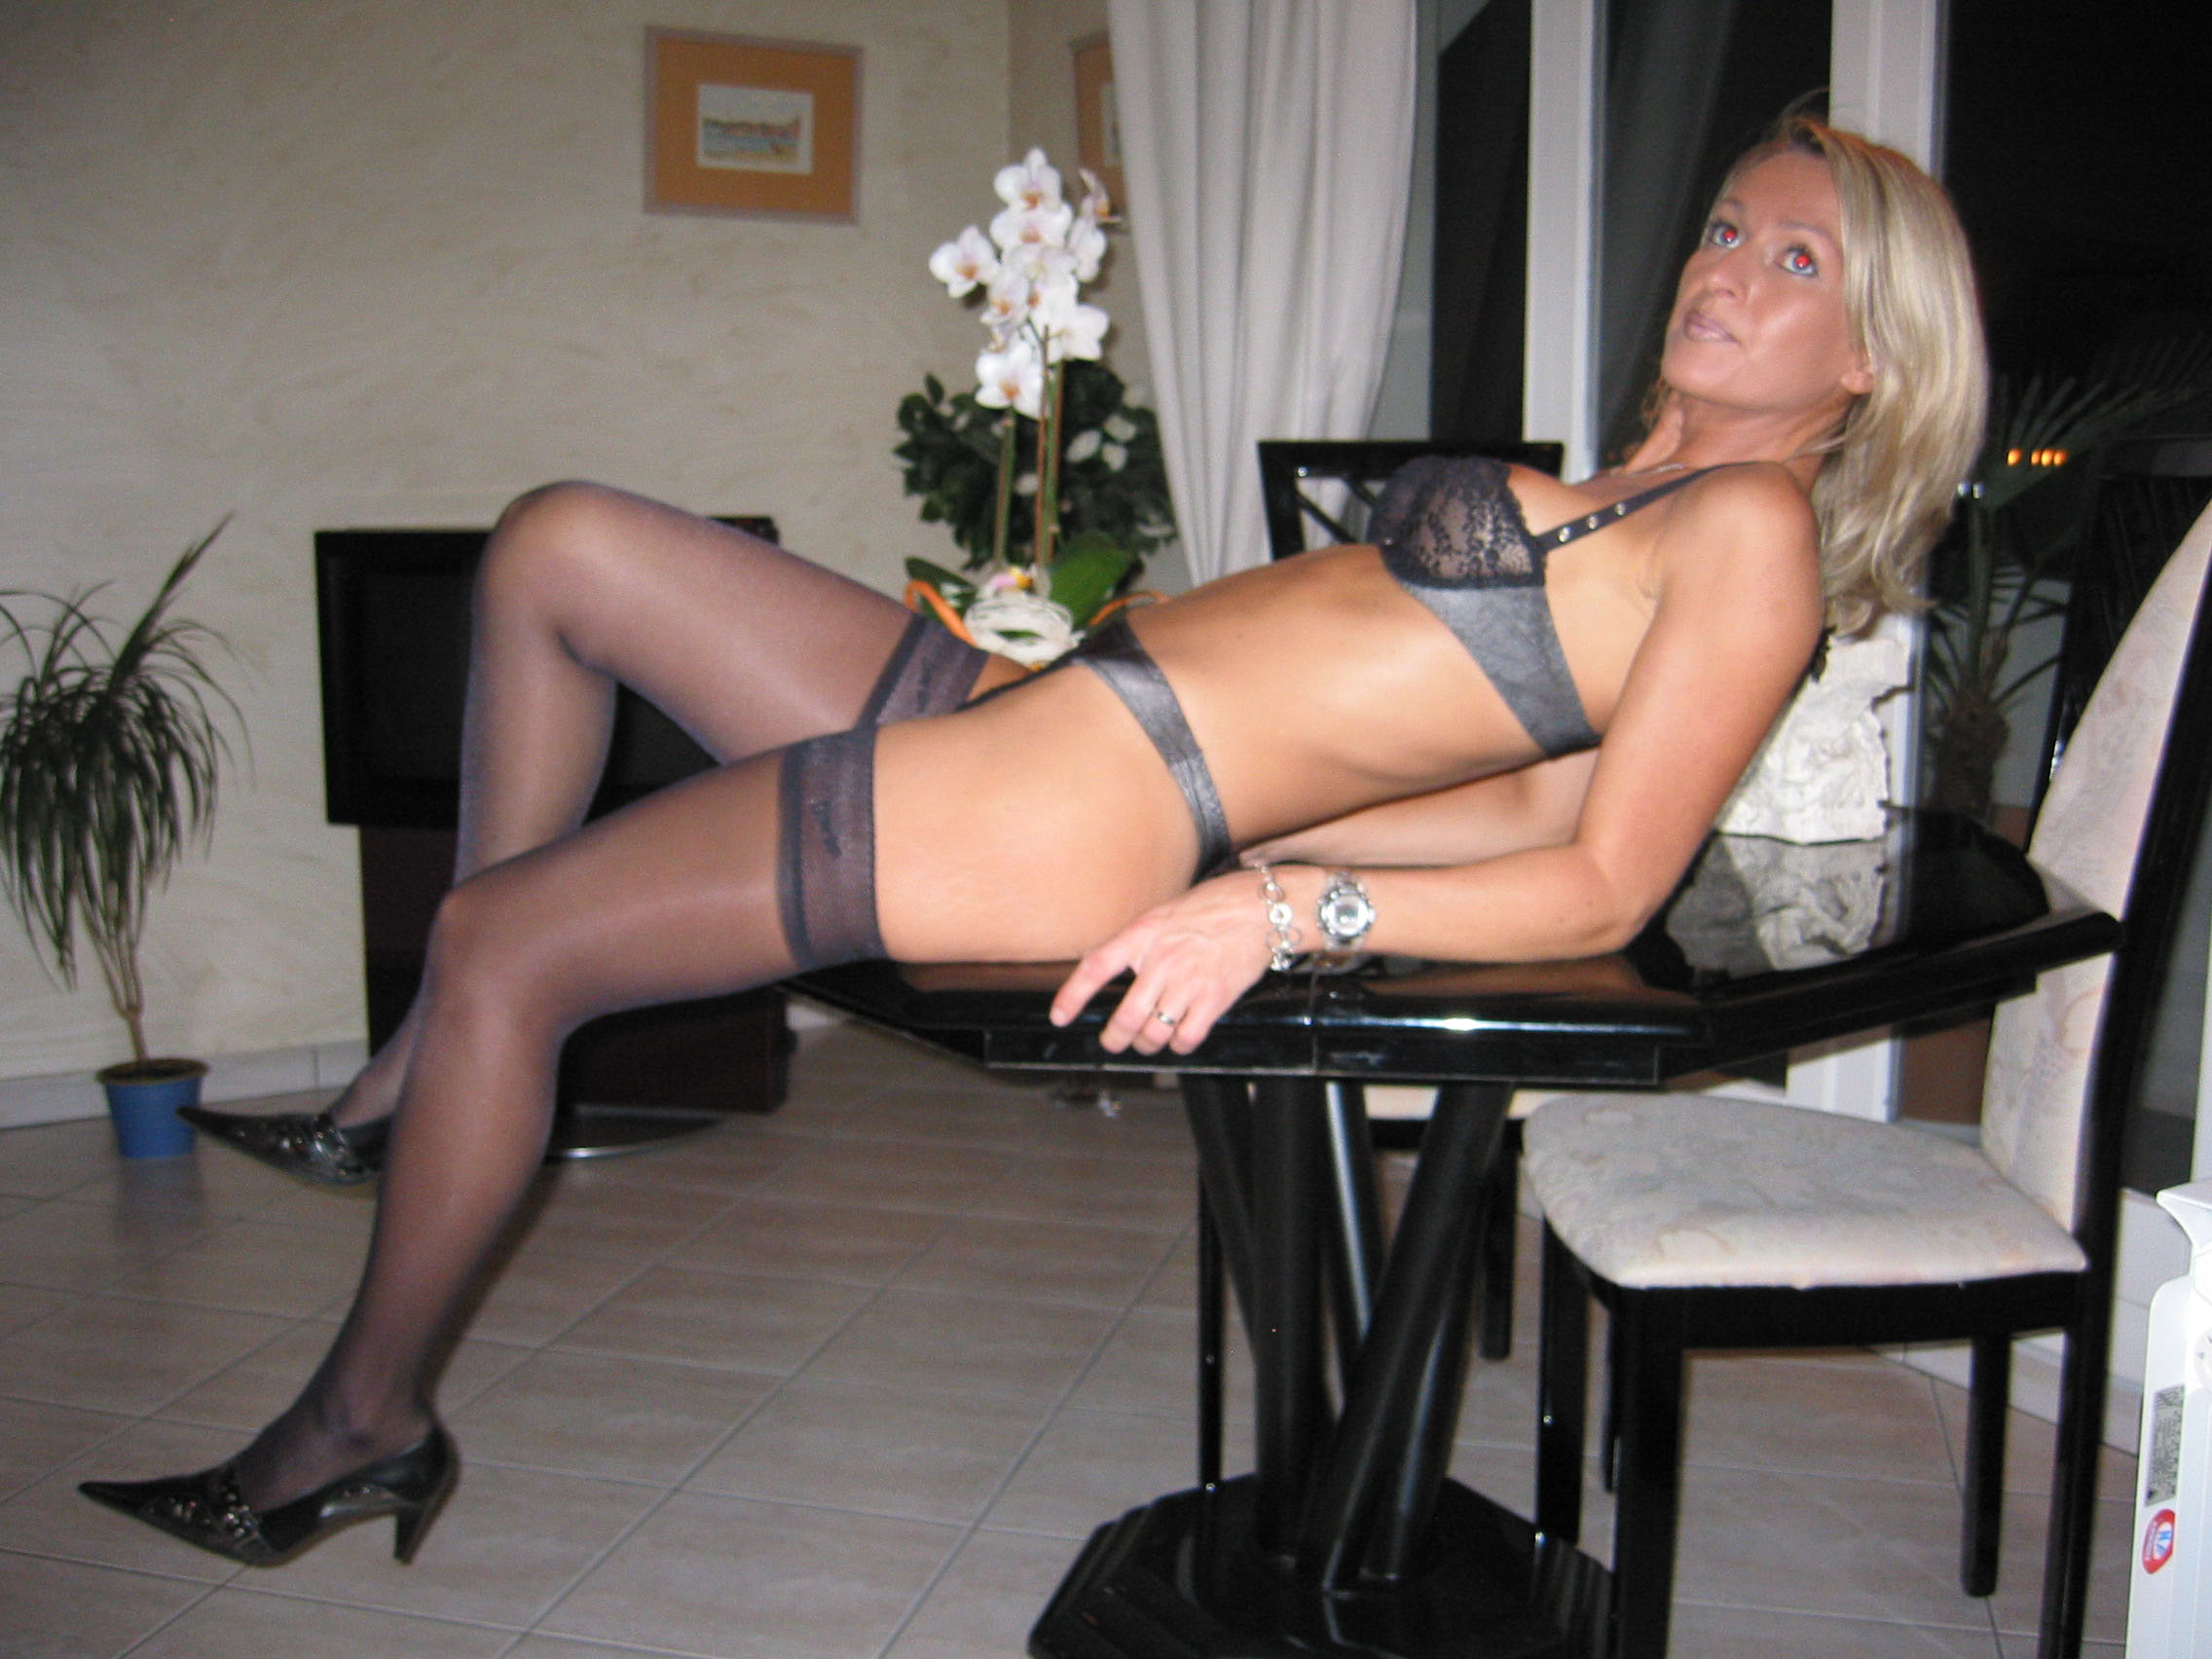 French amateur exhib mature milf blonde